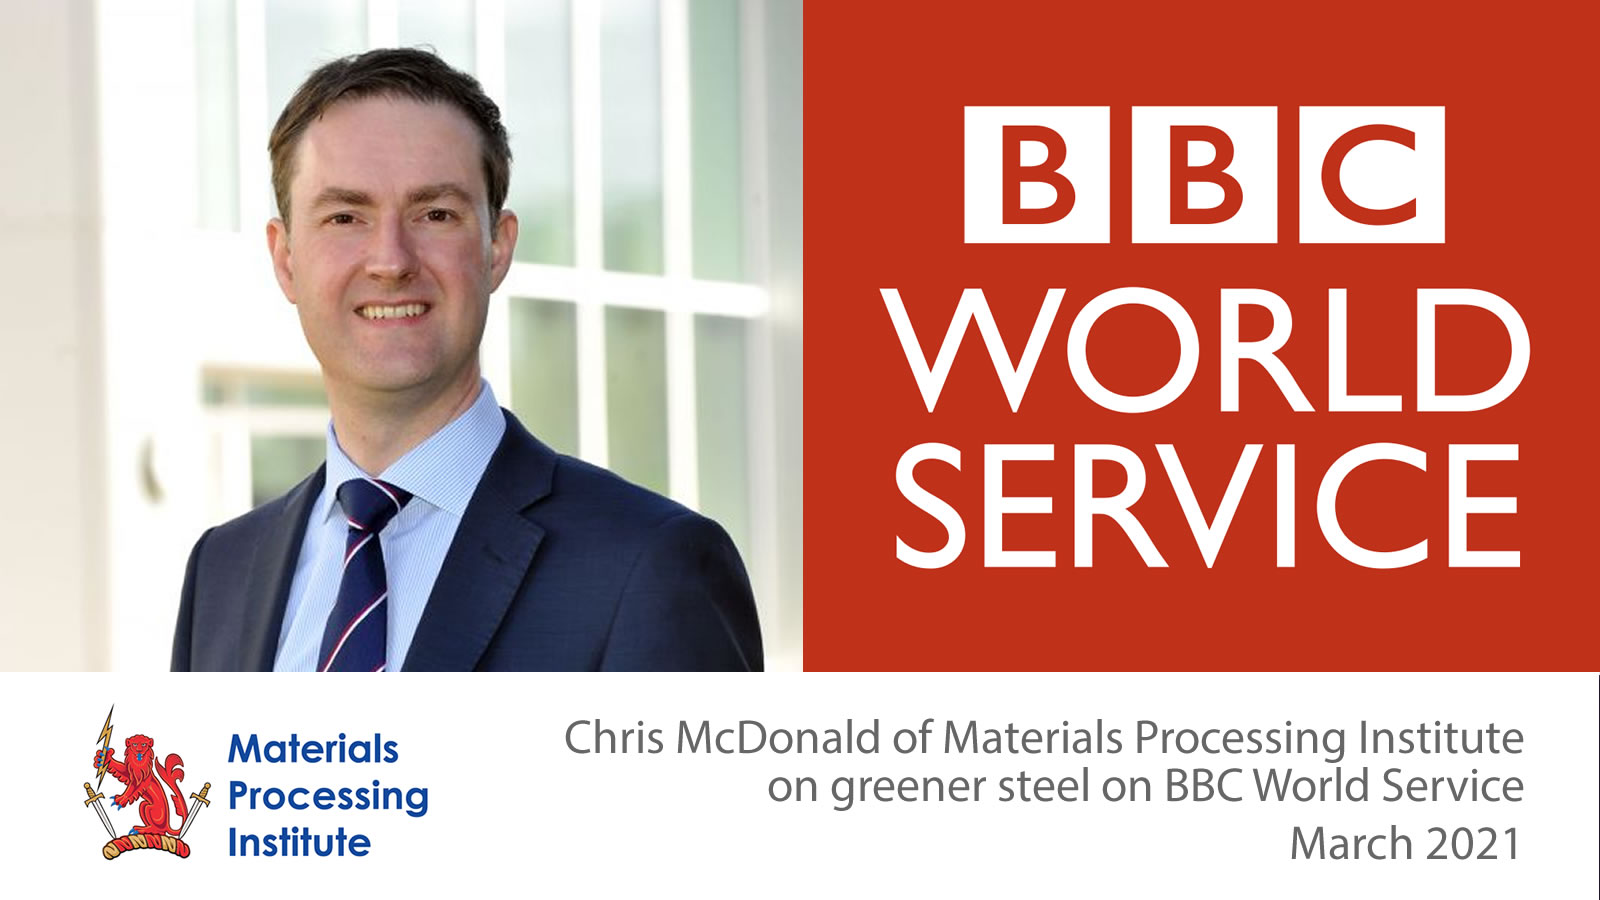 Chris McDonald discusses greener steel on BBC World Service - March 2021